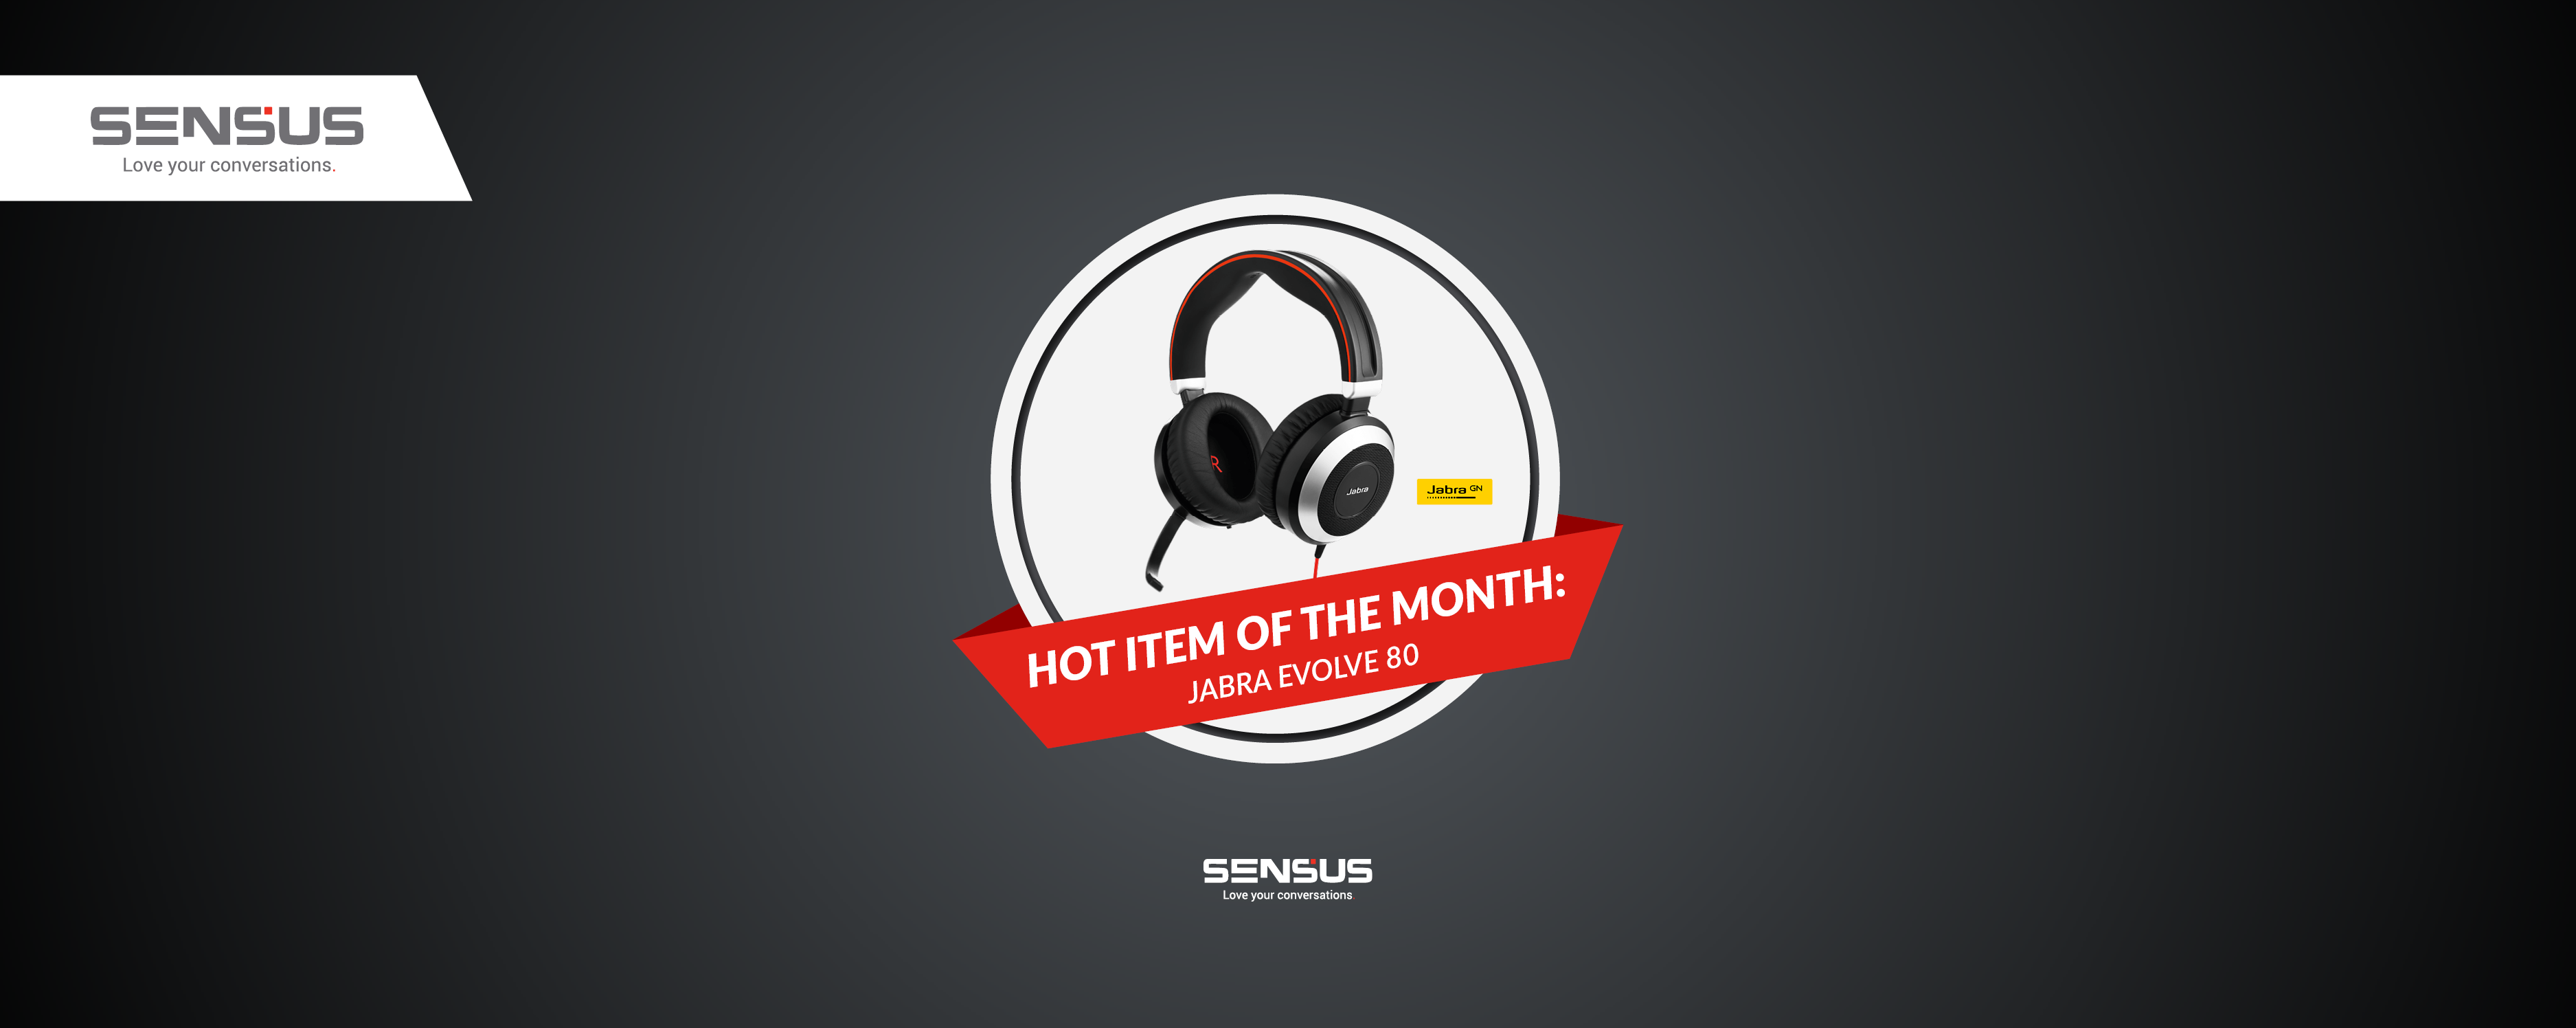 /medias/Hot item of the month - December 2.png